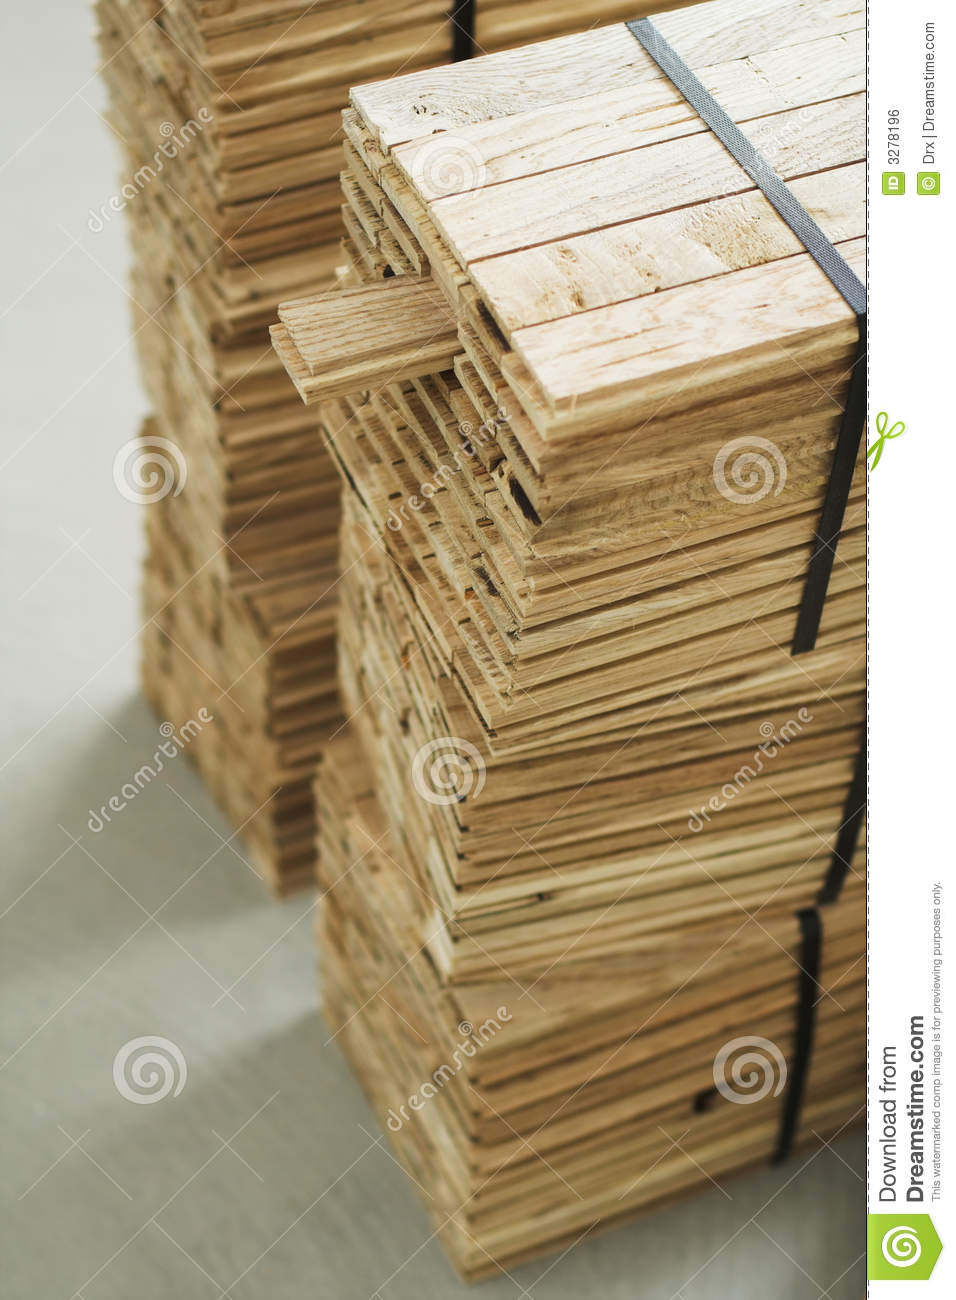 Wood Parquet Piece Royalty Free Stock Image  Image 3278196